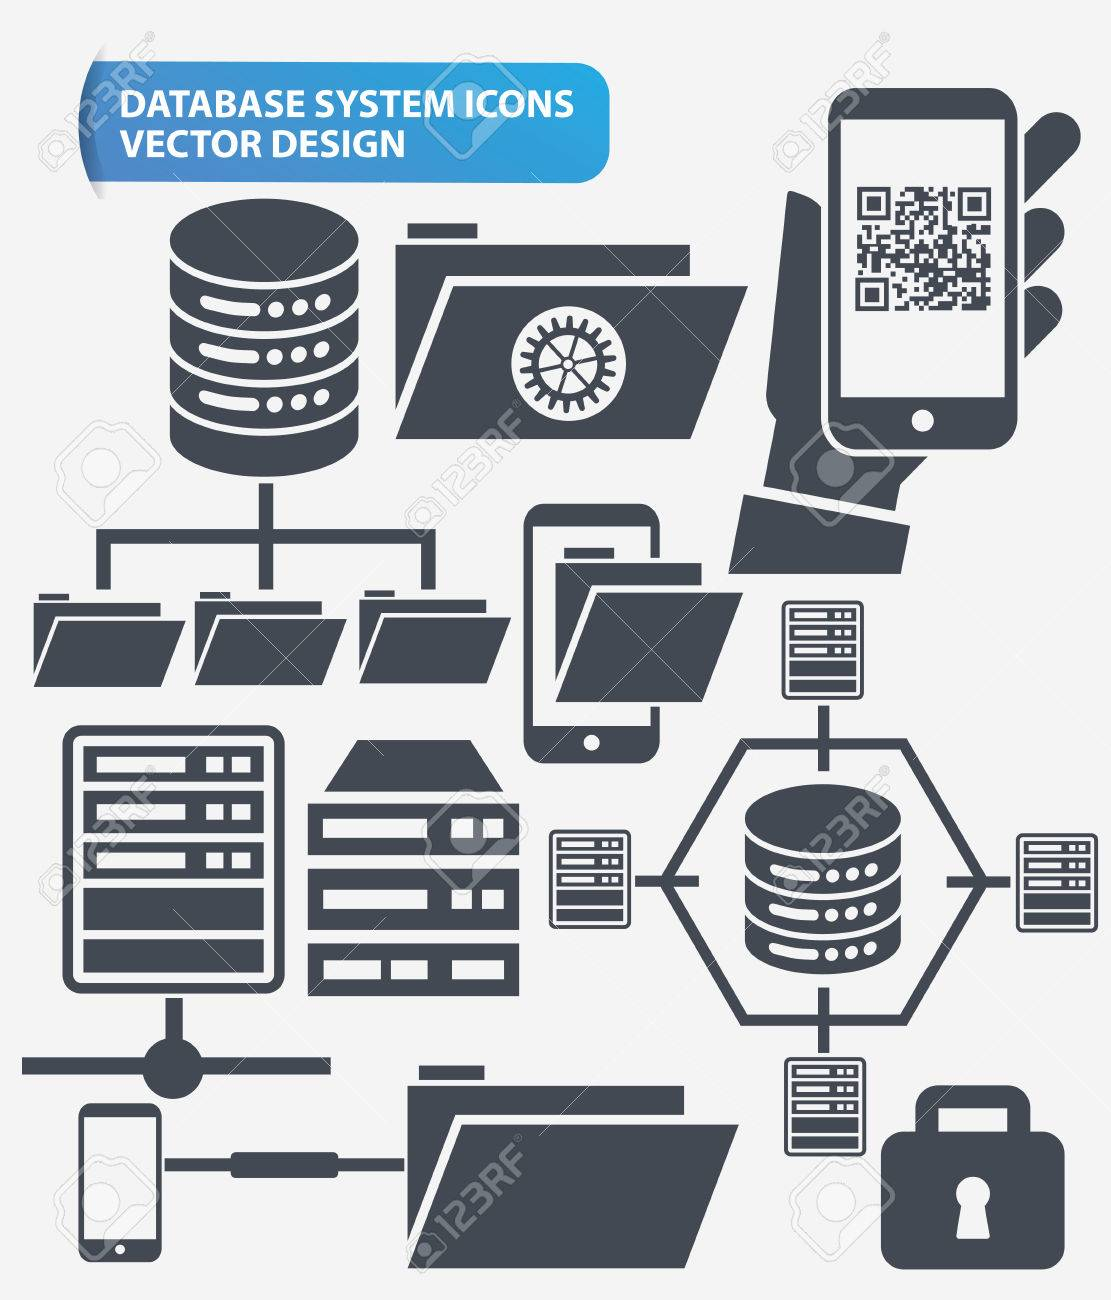 File share,Networking and database server icon set design,clean